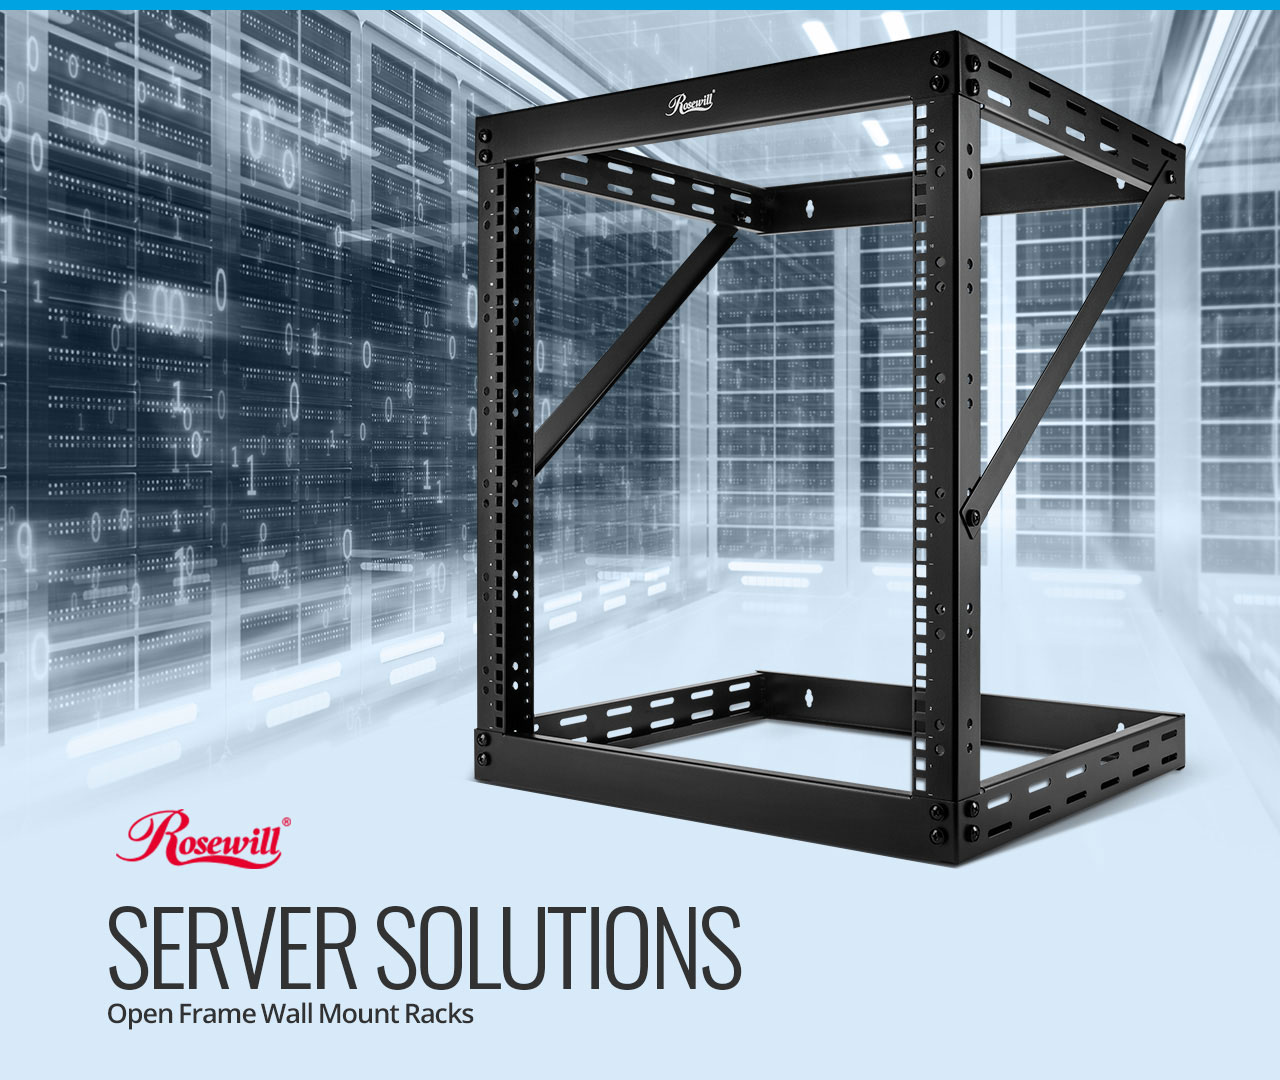 Rosewill RSR-2P12U002 server wall mount angled to the left with graphics of an information infrastructure and text that reads: SERVER SOLUTIONS - Open-Frame Wall-Mount Racks